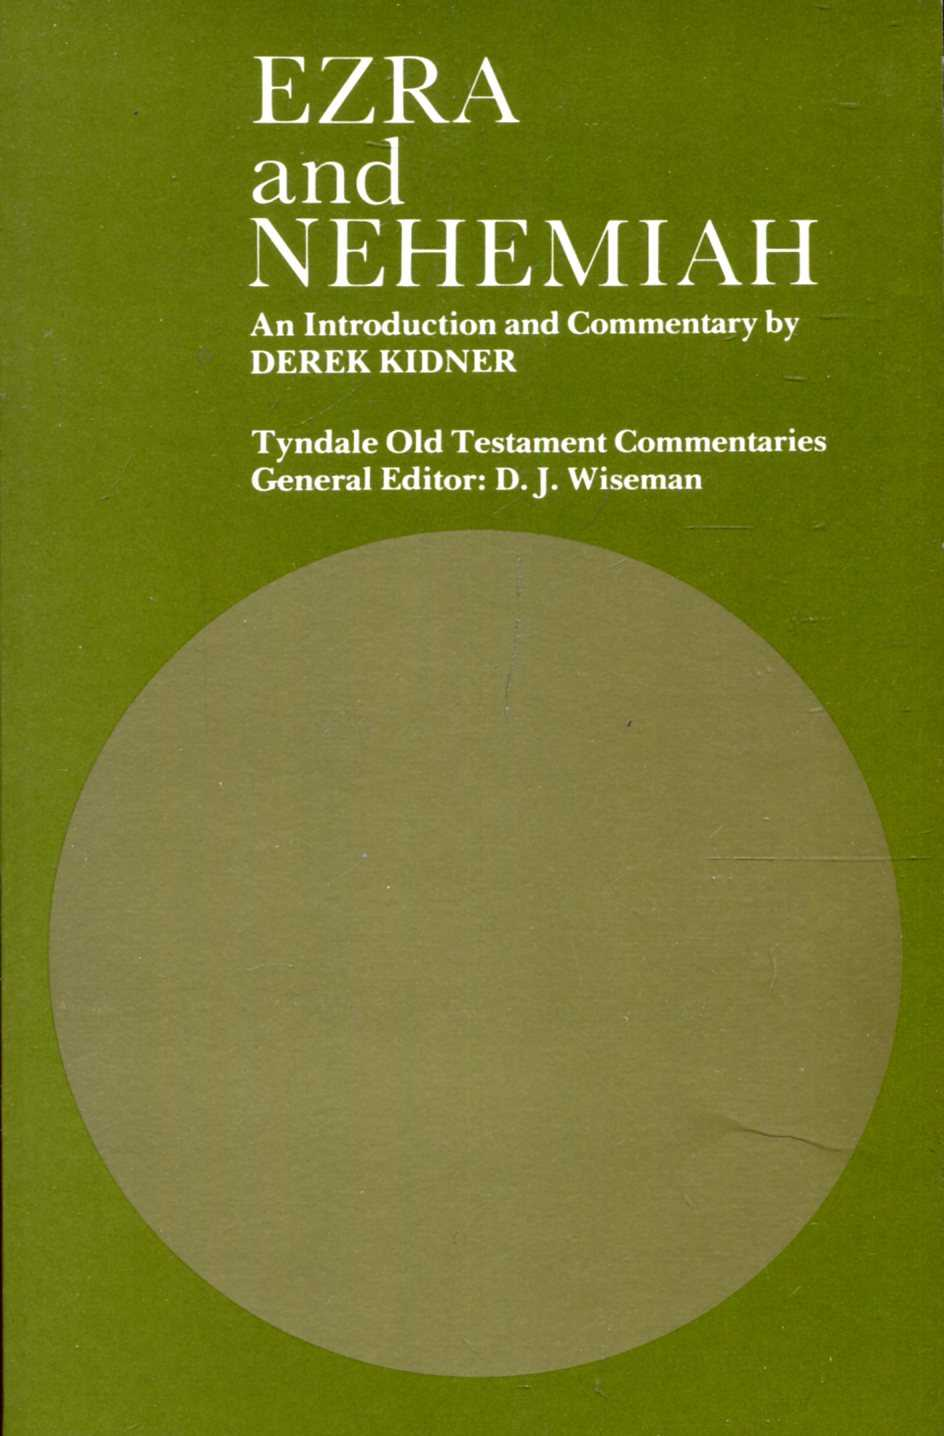 Image for Ezra and Nehemiah: An Introduction and Commentary (Tyndale Old Testament Commentary Series)